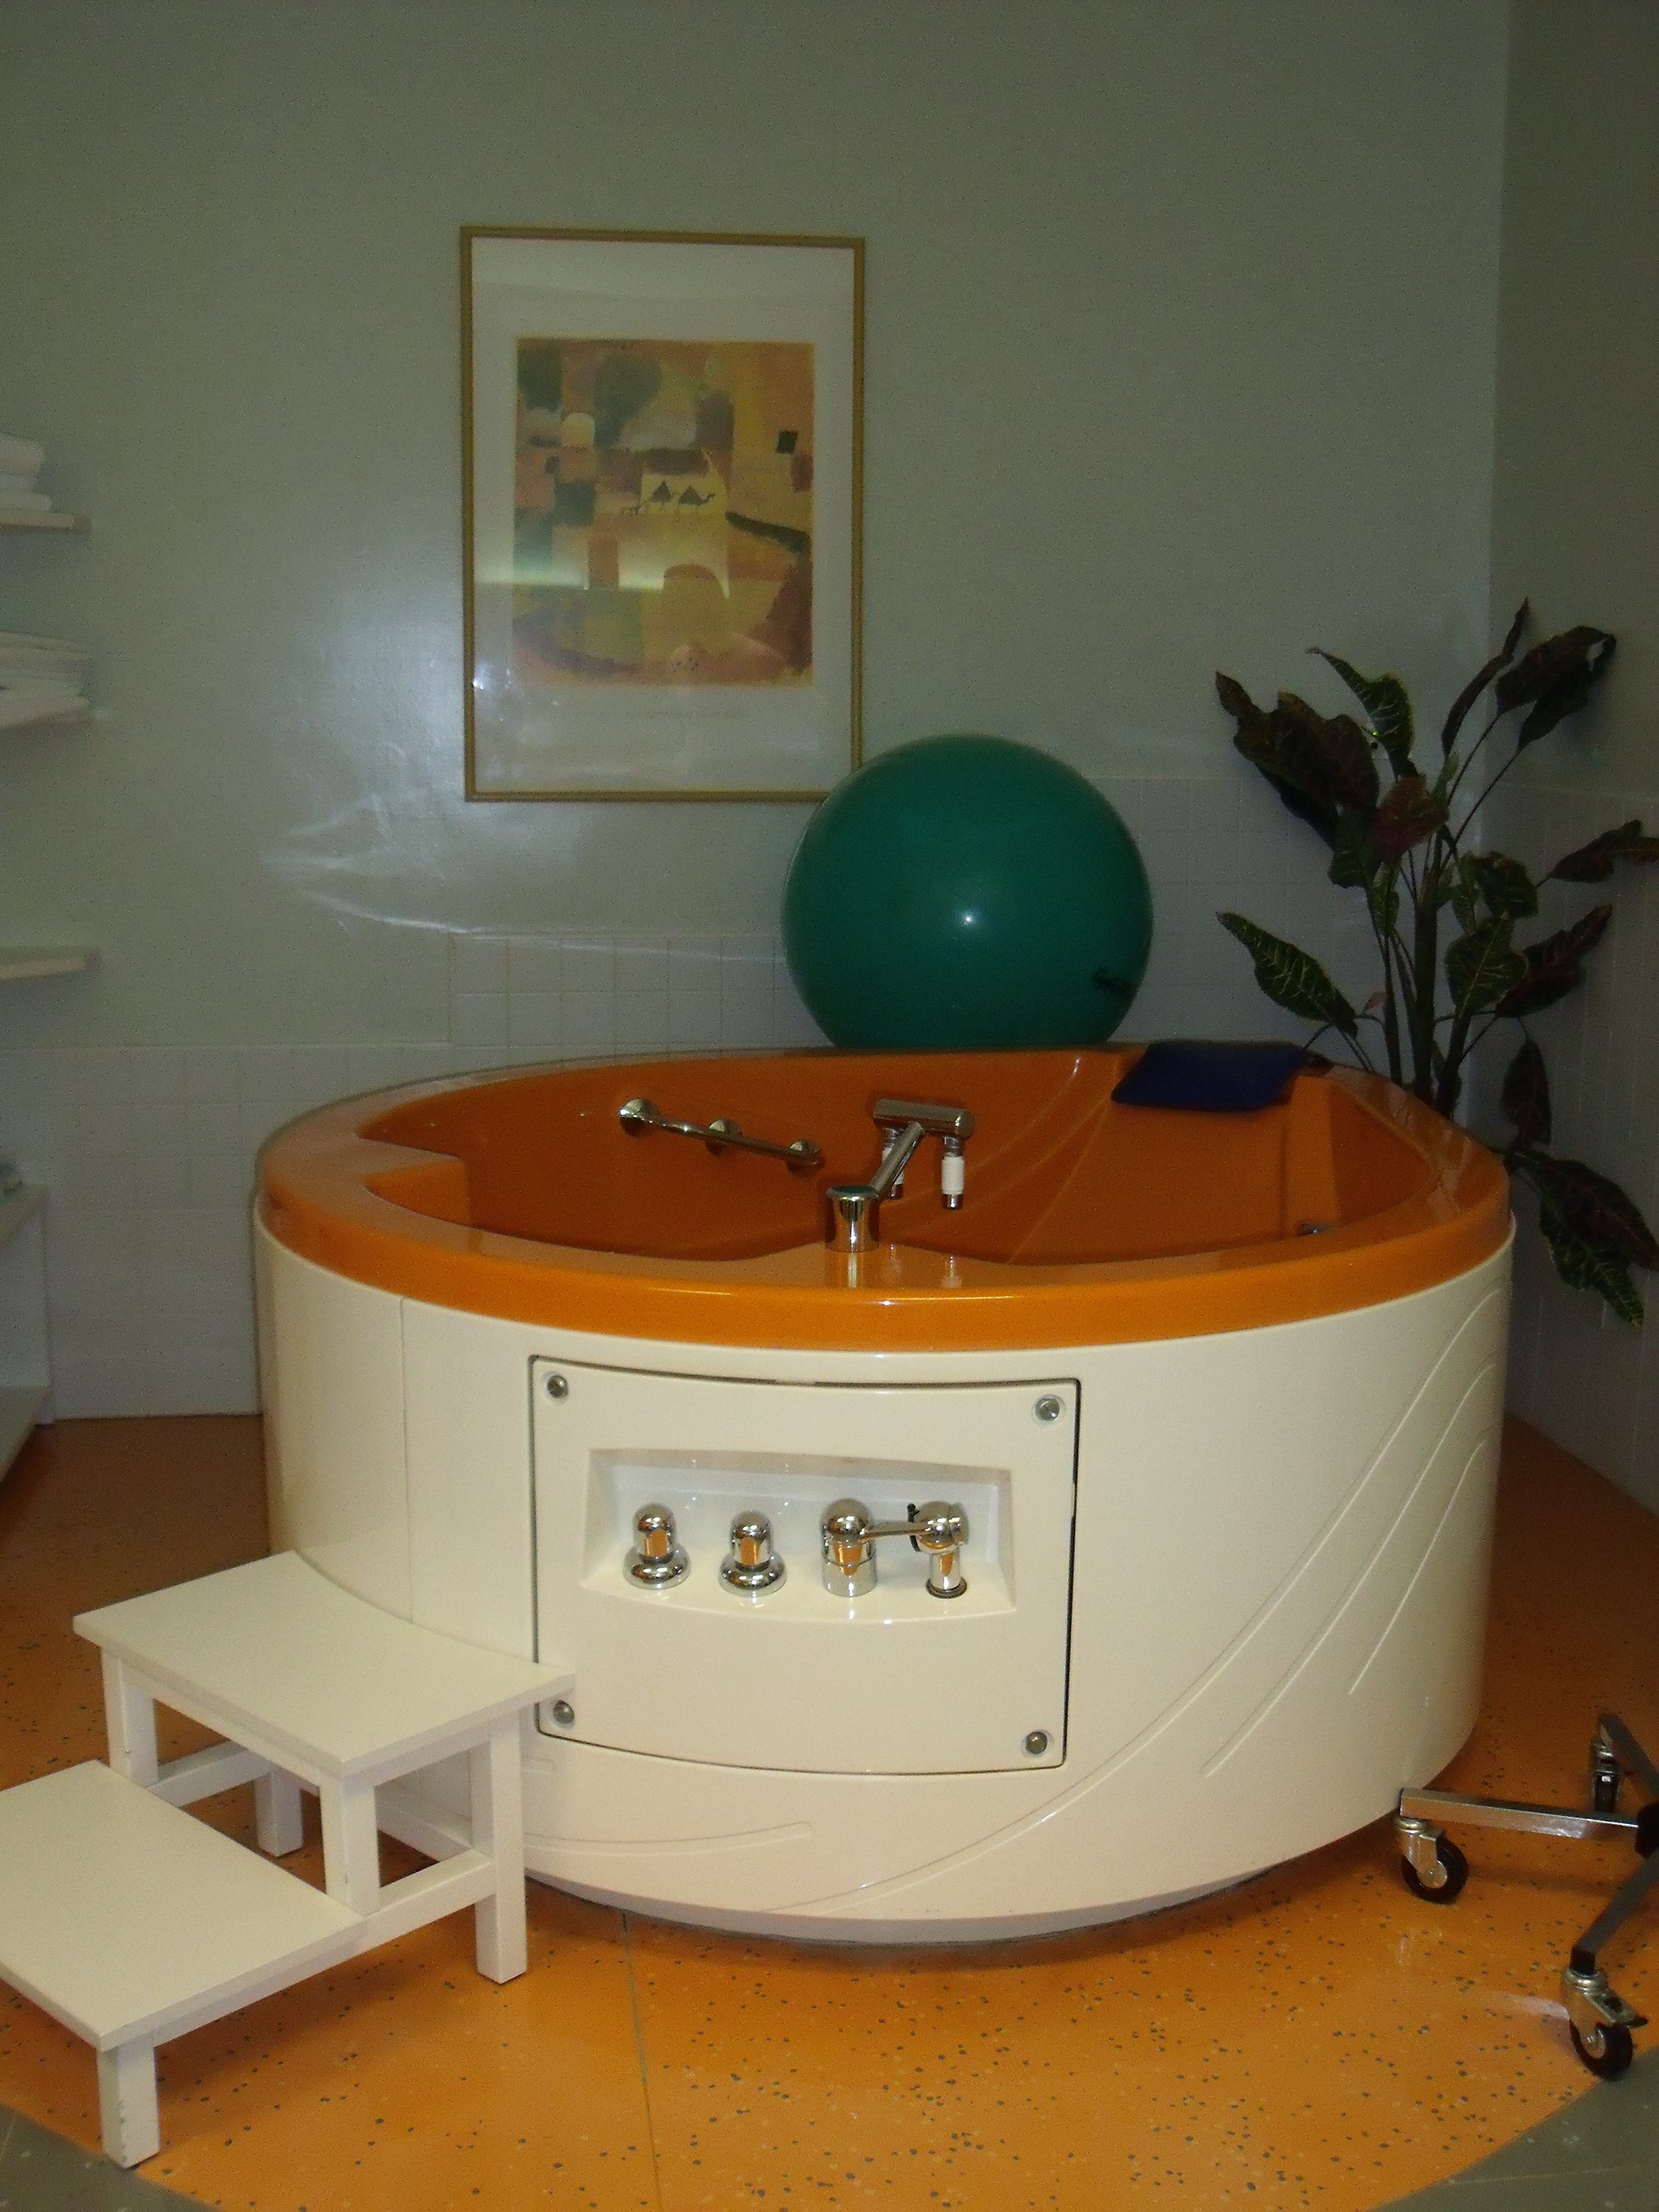 My Birthing Room at a Public Hospital in Italy - I had a wonderful midwife and gave birth in this tub.  I did not have an epidural, though one had been ordered along with a doctor to administer it, if needed.  After the birth, I stayed in a room with 3 other women.  The bathroom was down the hall. Lactation specialists visited daily. Aside from the fathers, no visitors were allowed. There were no translators and only one doctor spoke English.  I stayed for three days. We didn't pay a cent.